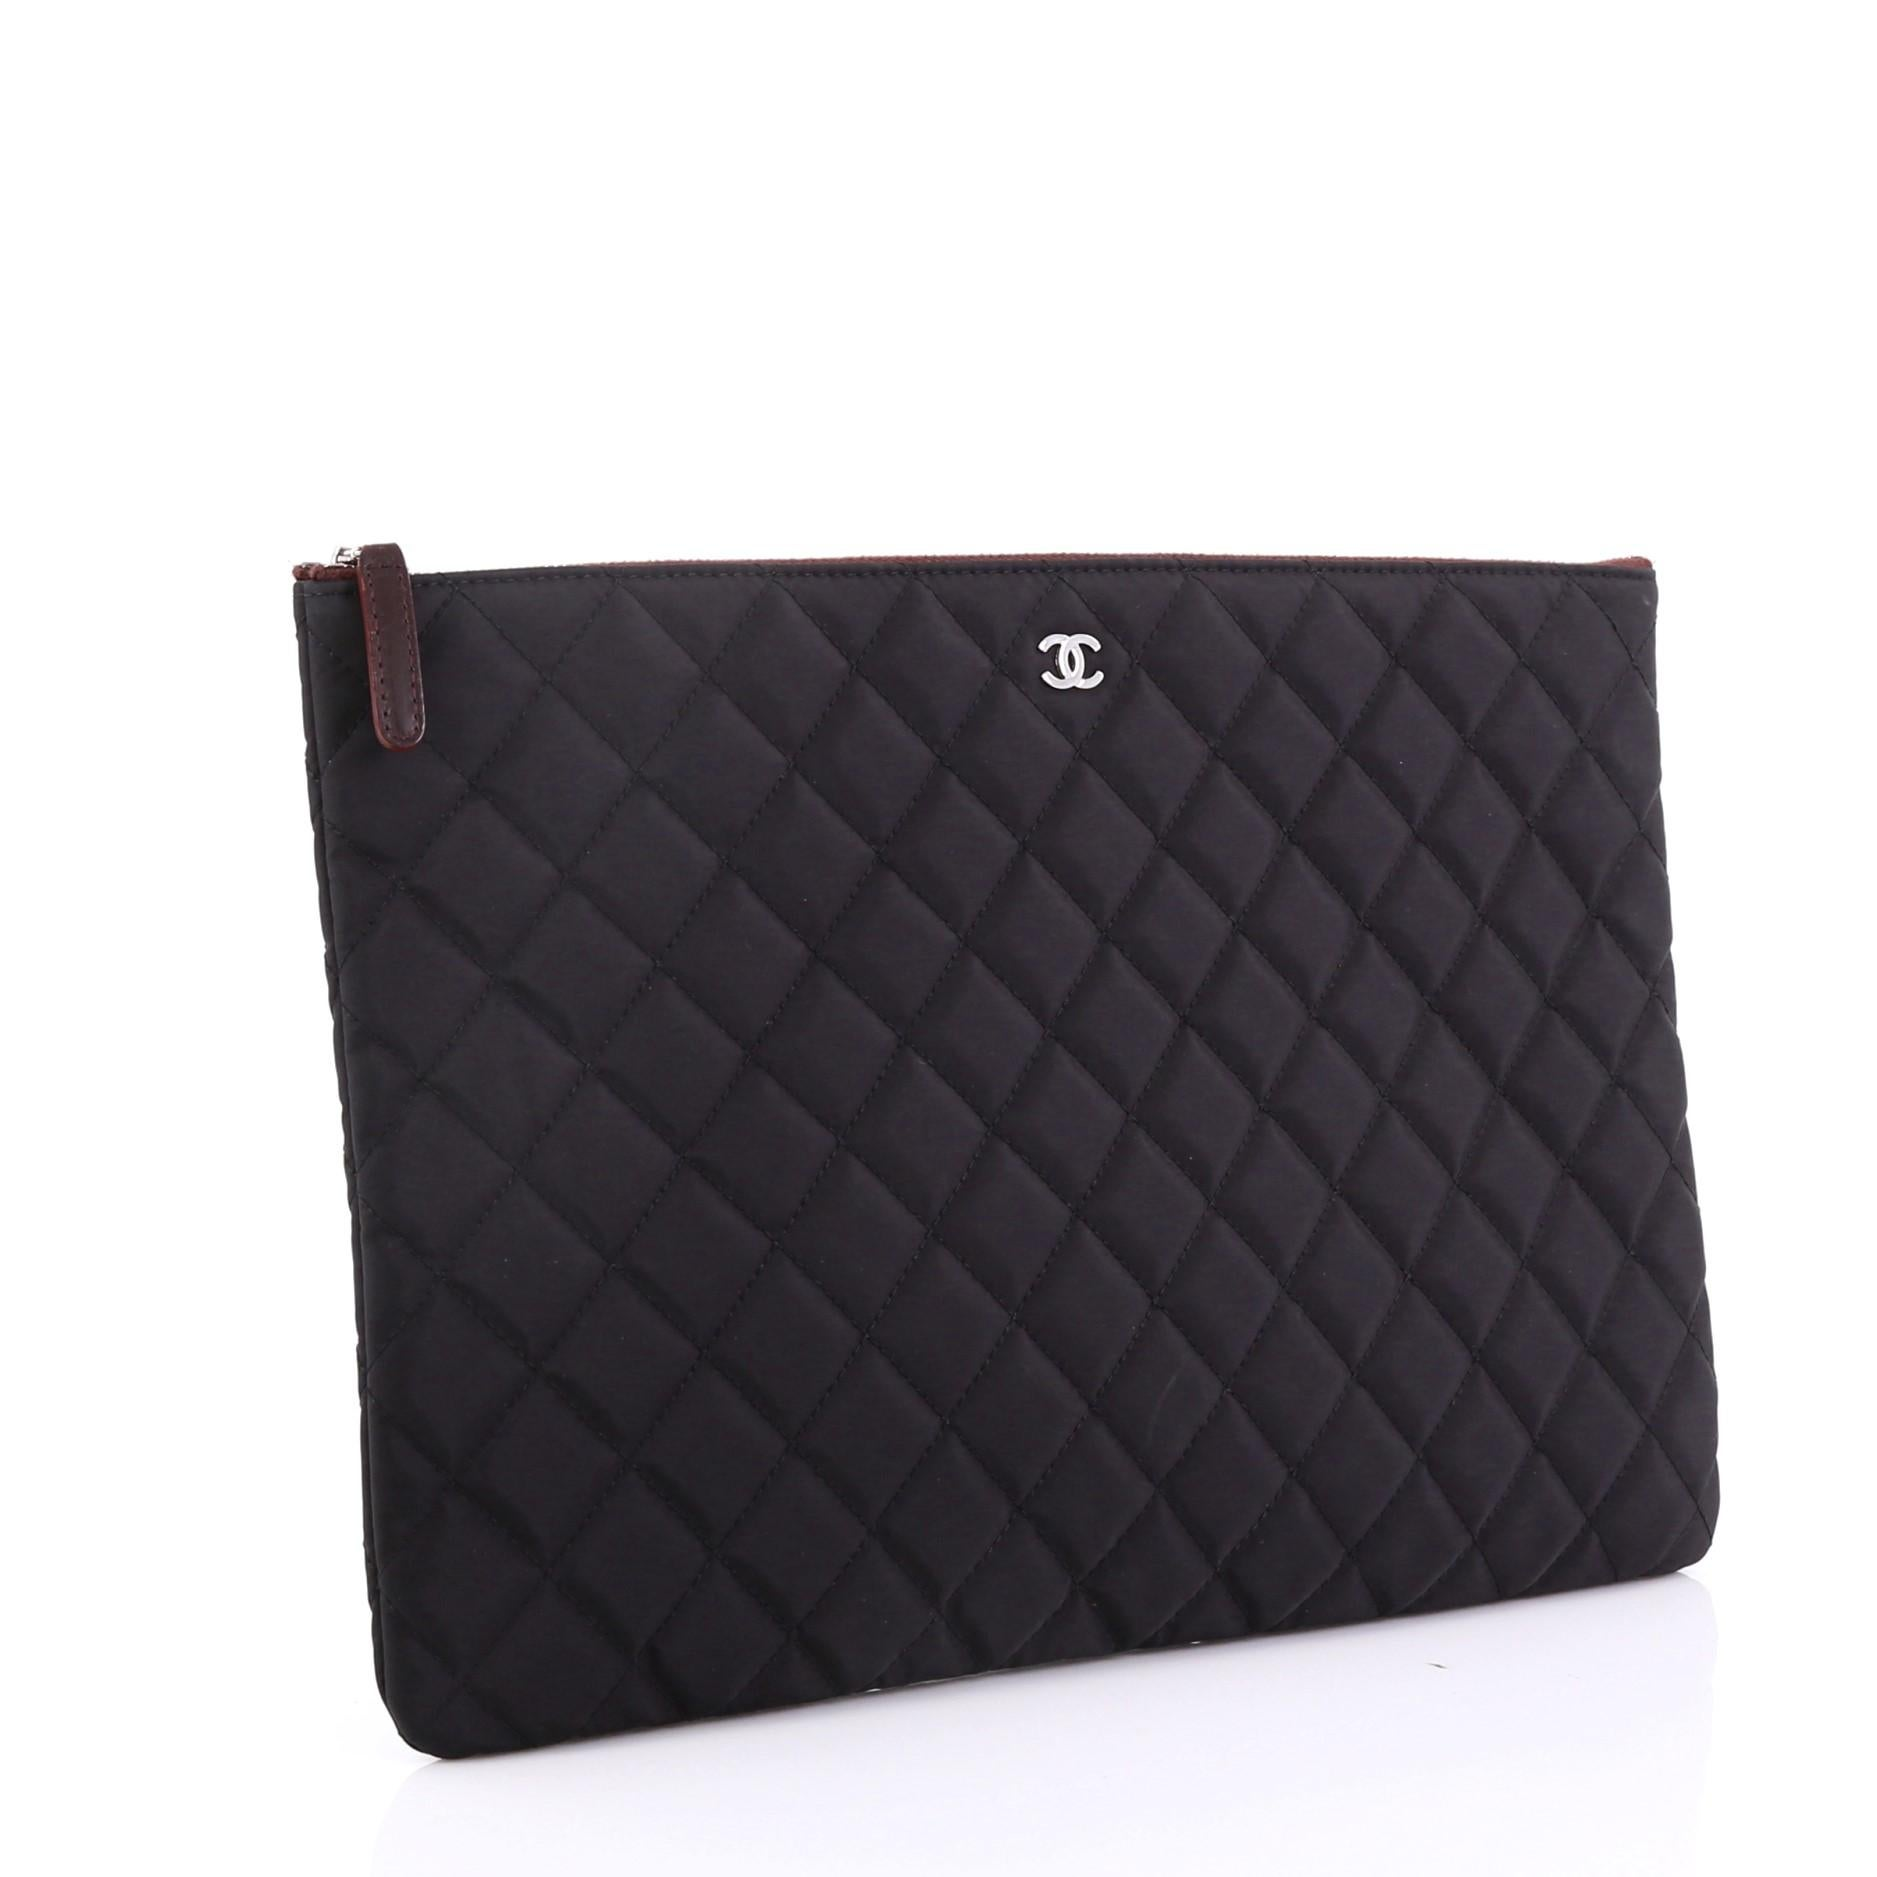 8cbd36be92c333 Chanel O Case Clutch Quilted Nylon Large at 1stdibs